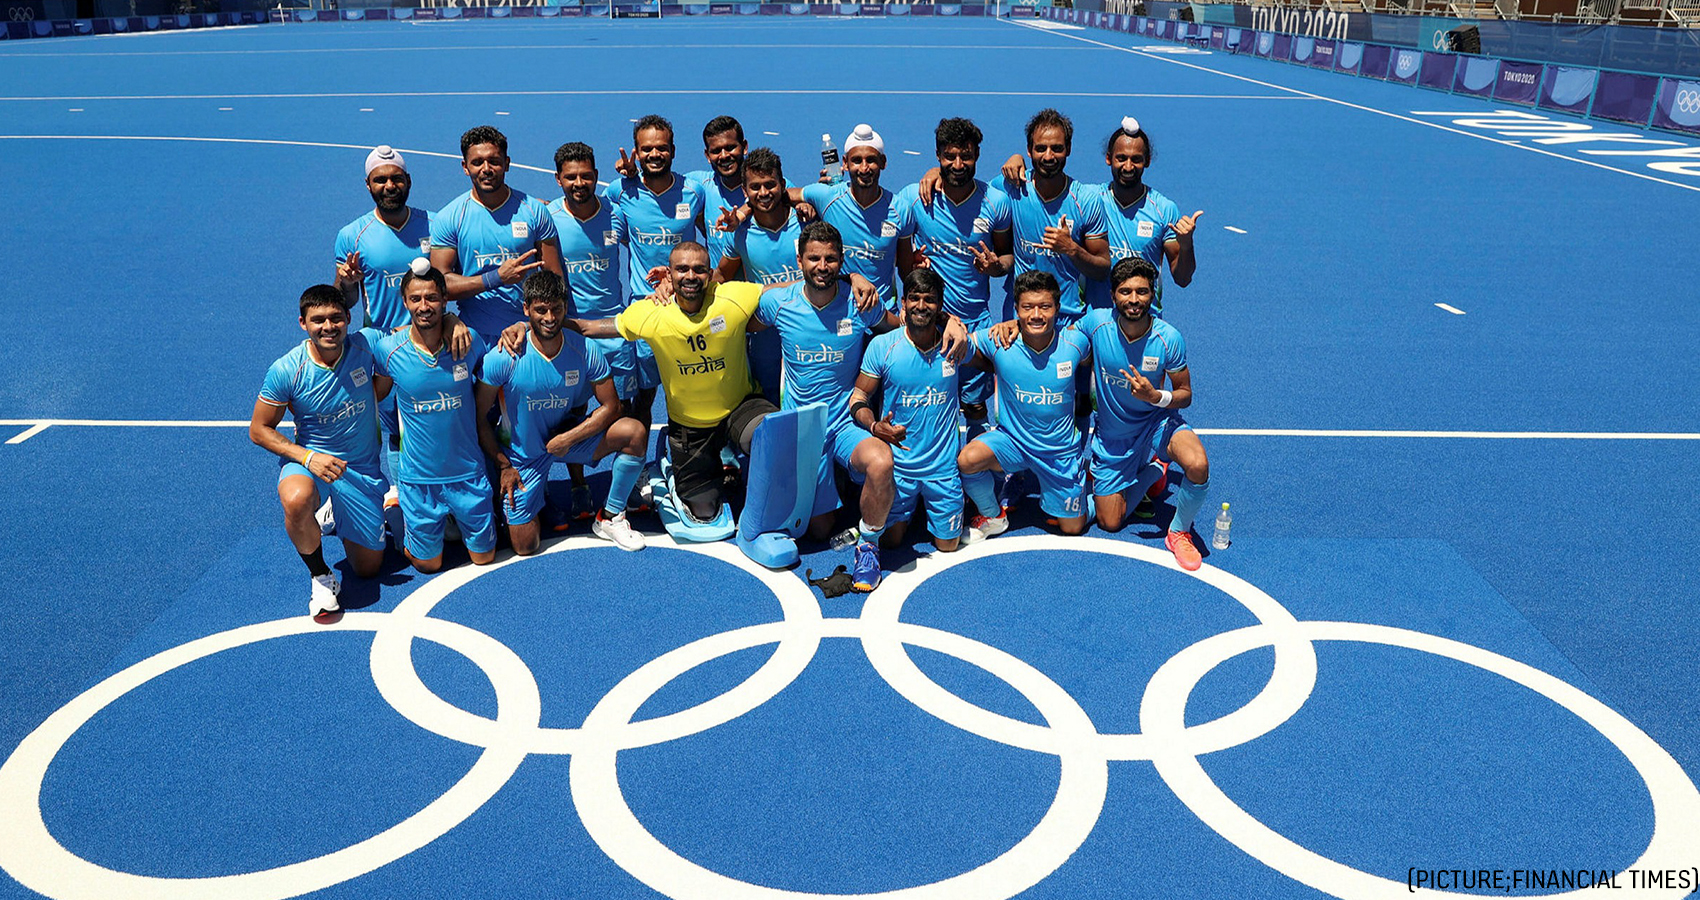 After 4 Decades, India Wins A Hockey Medal At Olympics